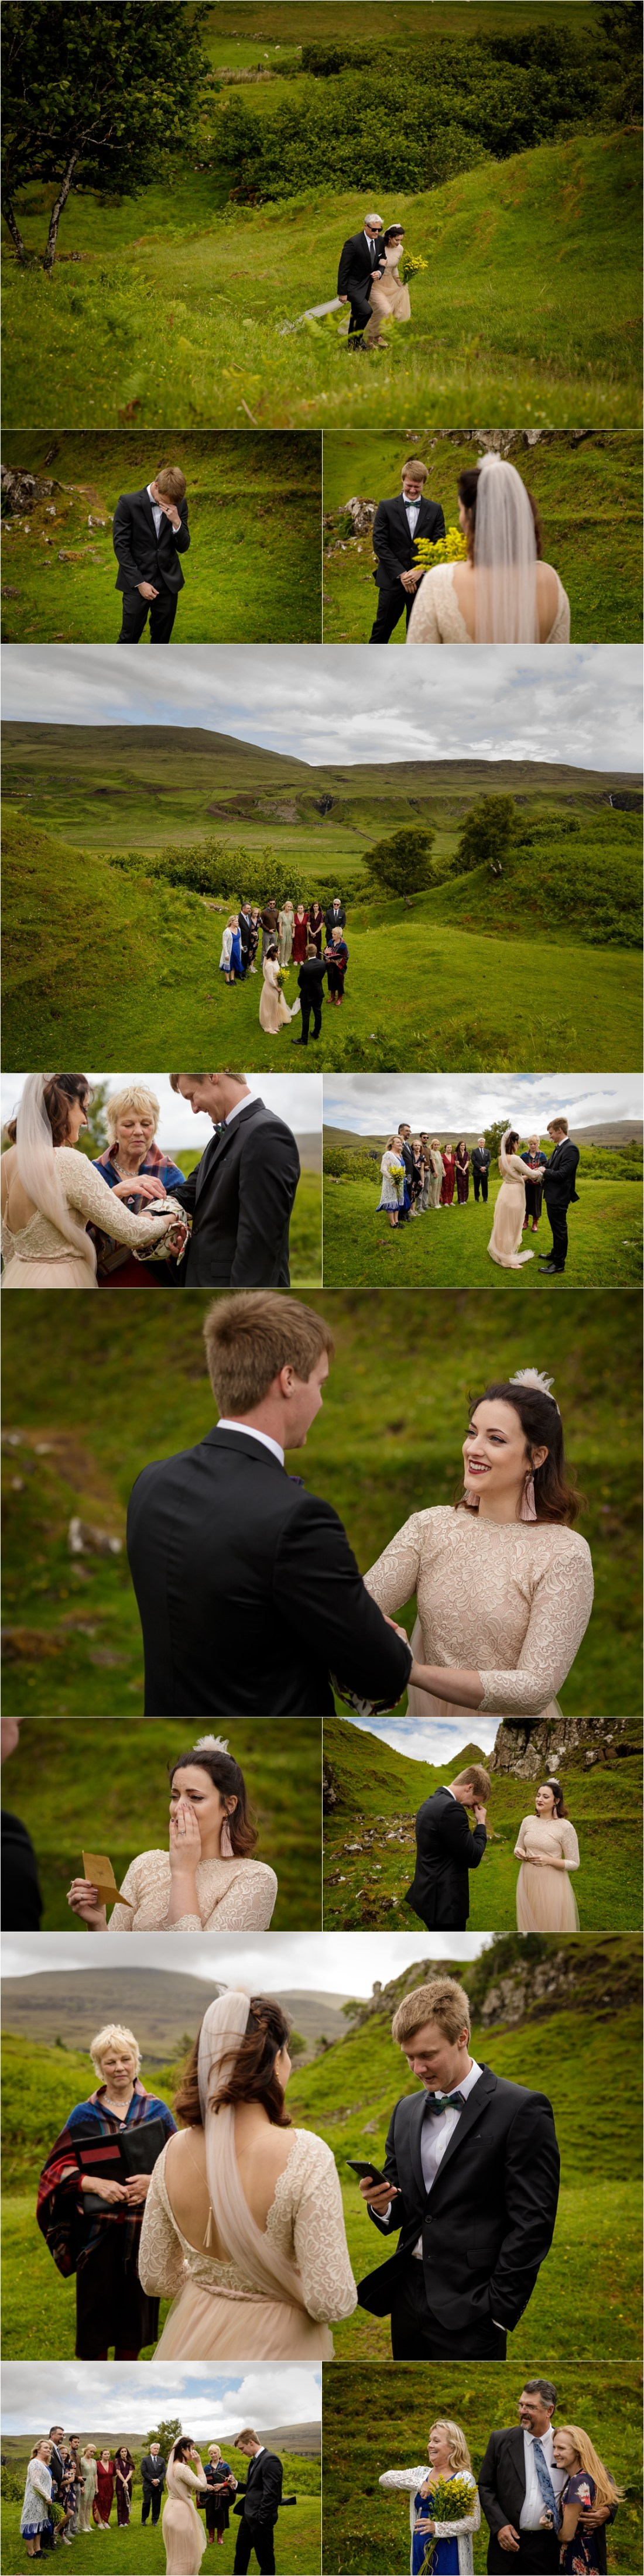 An emotional moment as the groom sees the bride for the first time at their Isle of Skye wedding by Lynne Kennedy Photography